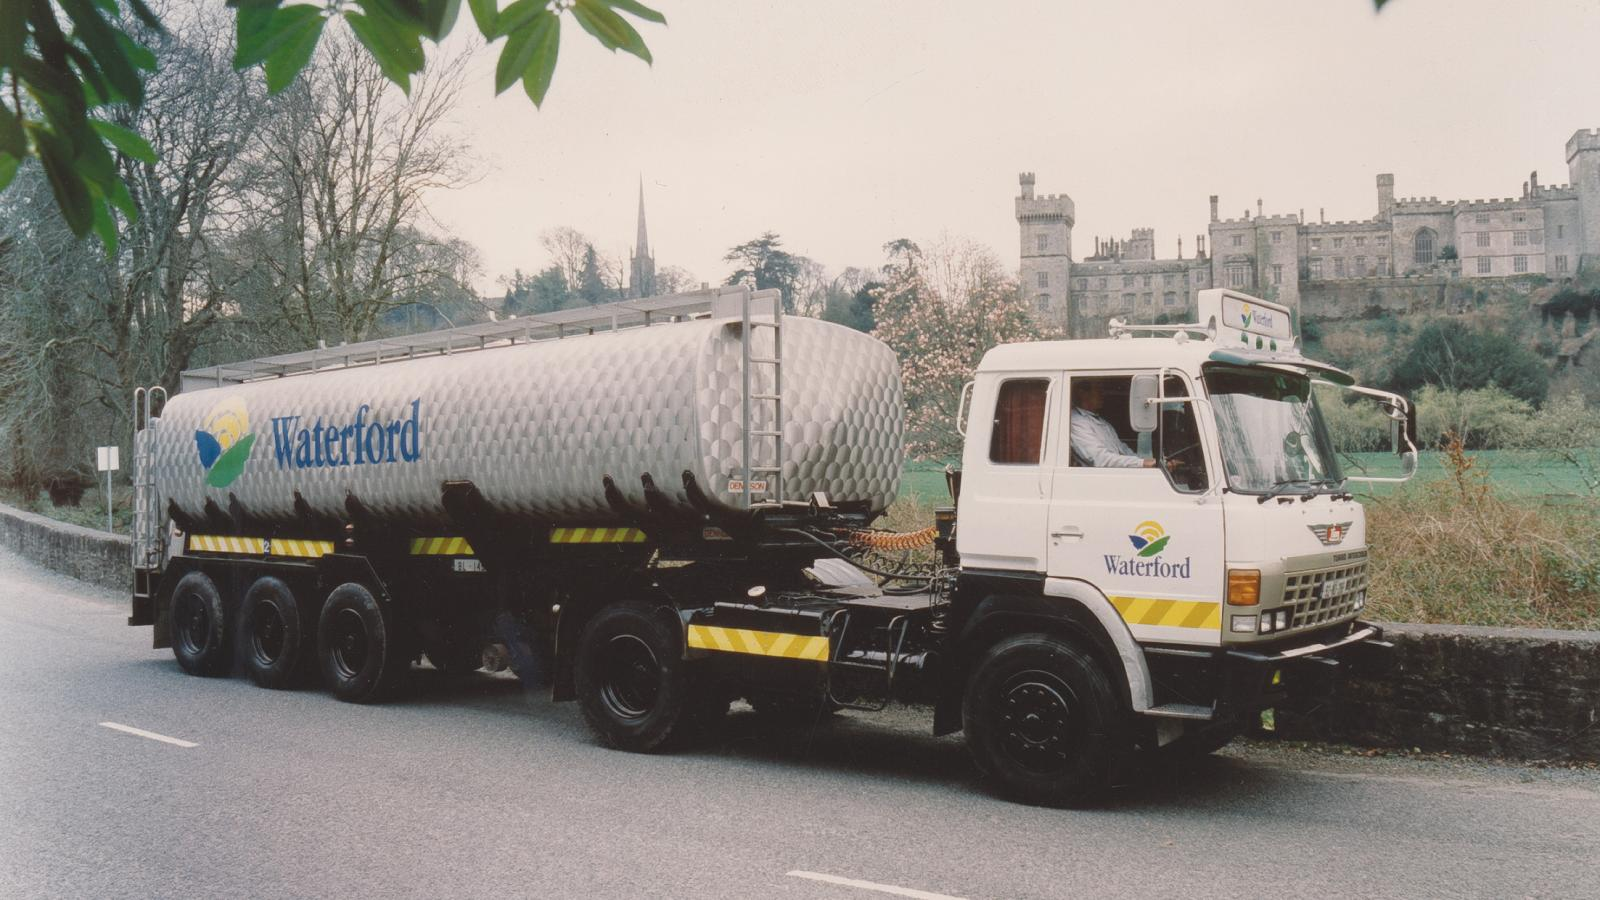 Waterford Truck